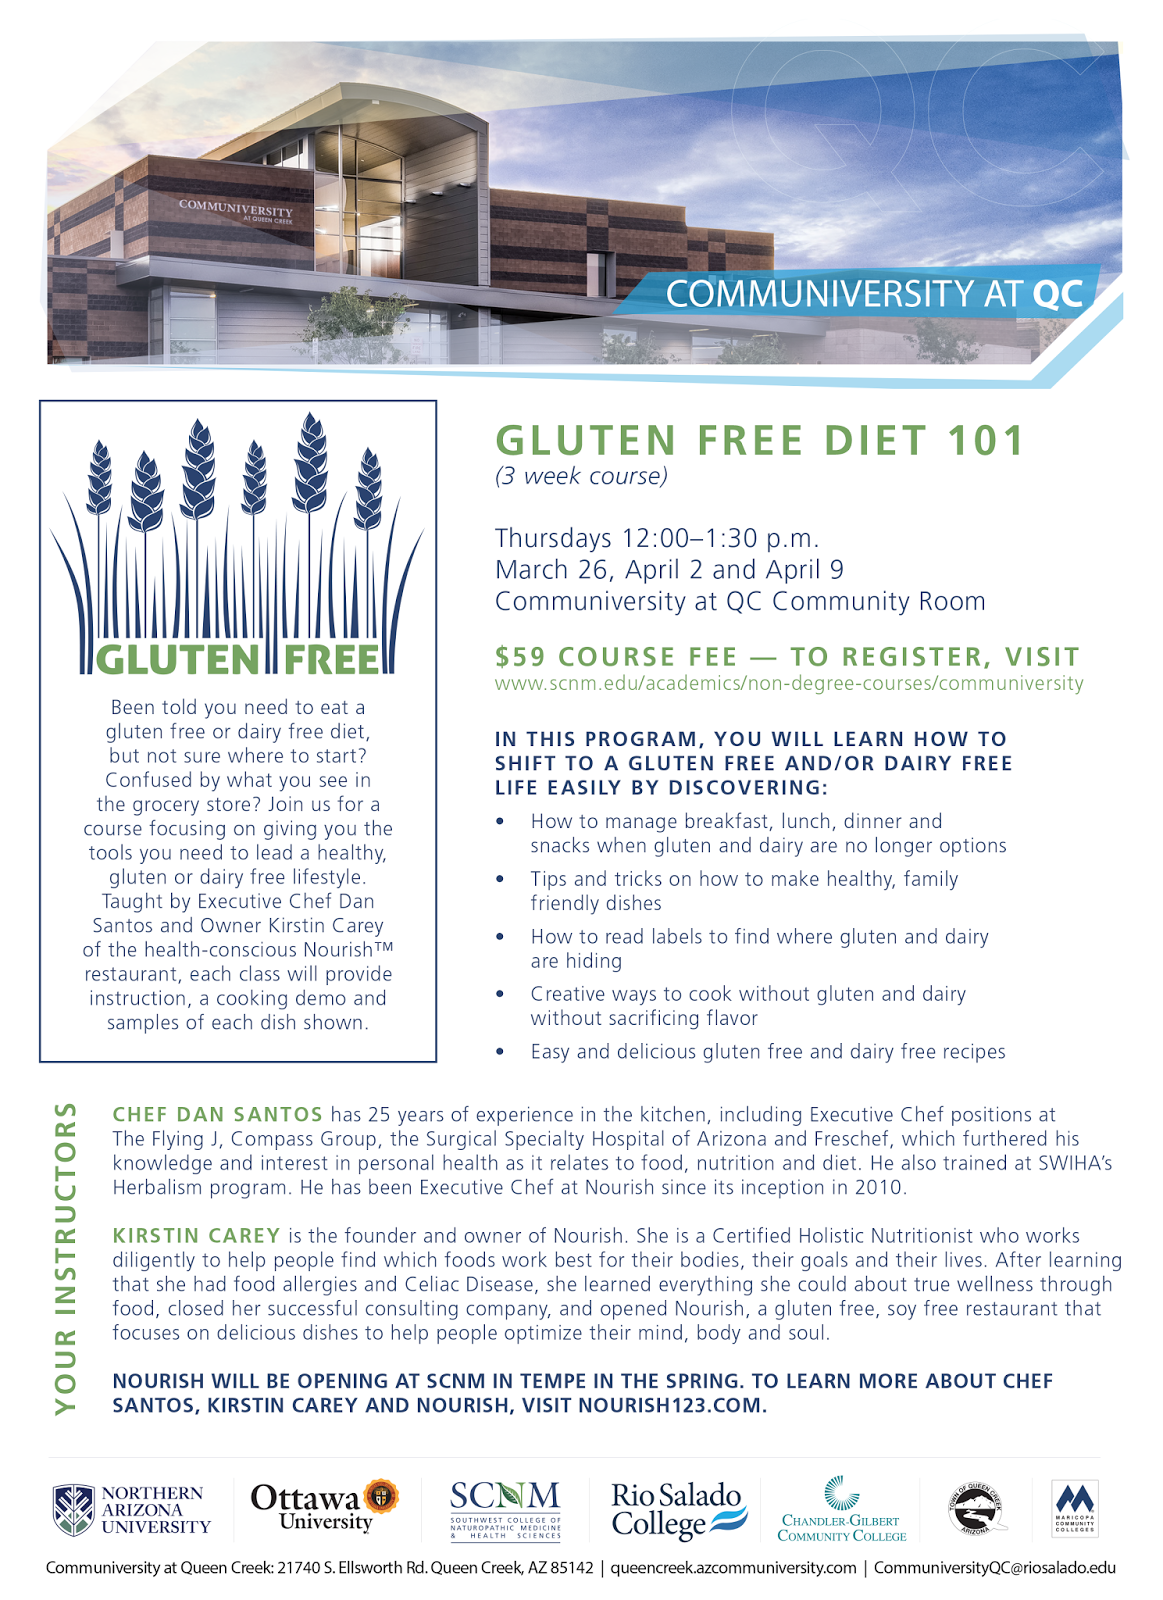 Join the Communiversity at Queen Creek and the Southwest College of Naturopathic Medicine (SCNM) for a 3-week natural health and wellness course in Gluten Free Diet 101, beginning Thursday, March 26, 12 -1 p.m., at the Communiversity at Queen Creek.   REGISTER NOW!  In this program, you will learn how to shift to a gluten free and/or dairy free life easily by discovering: 1. How to manage breakfast, lunch, dinner and snacks when gluten and dairy are no longer options. 2. Tips and tricks on how to make healthy, family friendly dishes. 3. How to read labels to find where gluten and dairy are hiding. 4. Creative ways to cook without gluten and dairy without sacrificing flavor. 5. Easy and delicious gluten free and dairy free recipes.  Meet Your Instructors: CHEF DAN SANTOS has 25 years of experience in the kitchen, including Executive Chef positions at The Flying J, Compass Group, the Surgical Specialty Hospital of Arizona and Freschef, which furthered his knowledge and interest in personal health as it relates to food, nutrition and diet. He also trained at SWIHA's Herbalism program. He has been Executive Chef at Nourish since its inception in 2010.    KIRSTIN CAREY is the founder and owner of Nourish. She is a Certified Holistic Nutritionist who works diligently to help people find which foods work best for their bodies, their goals and their lives.  After learning that she had food allergies and Celiac Disease, she learned everything she could about true wellness through food, closed her successful consulting company, and opened Nourish, a gluten free, soy free restaurant that focuses on delicious dishes to help people optimize their mind, body and soul.  Nourish will be opening at the SCNM in Tempe in the spring. To learn more about Chef Santos, Kristin Carey and Nourish, please visit Nourish123.com.